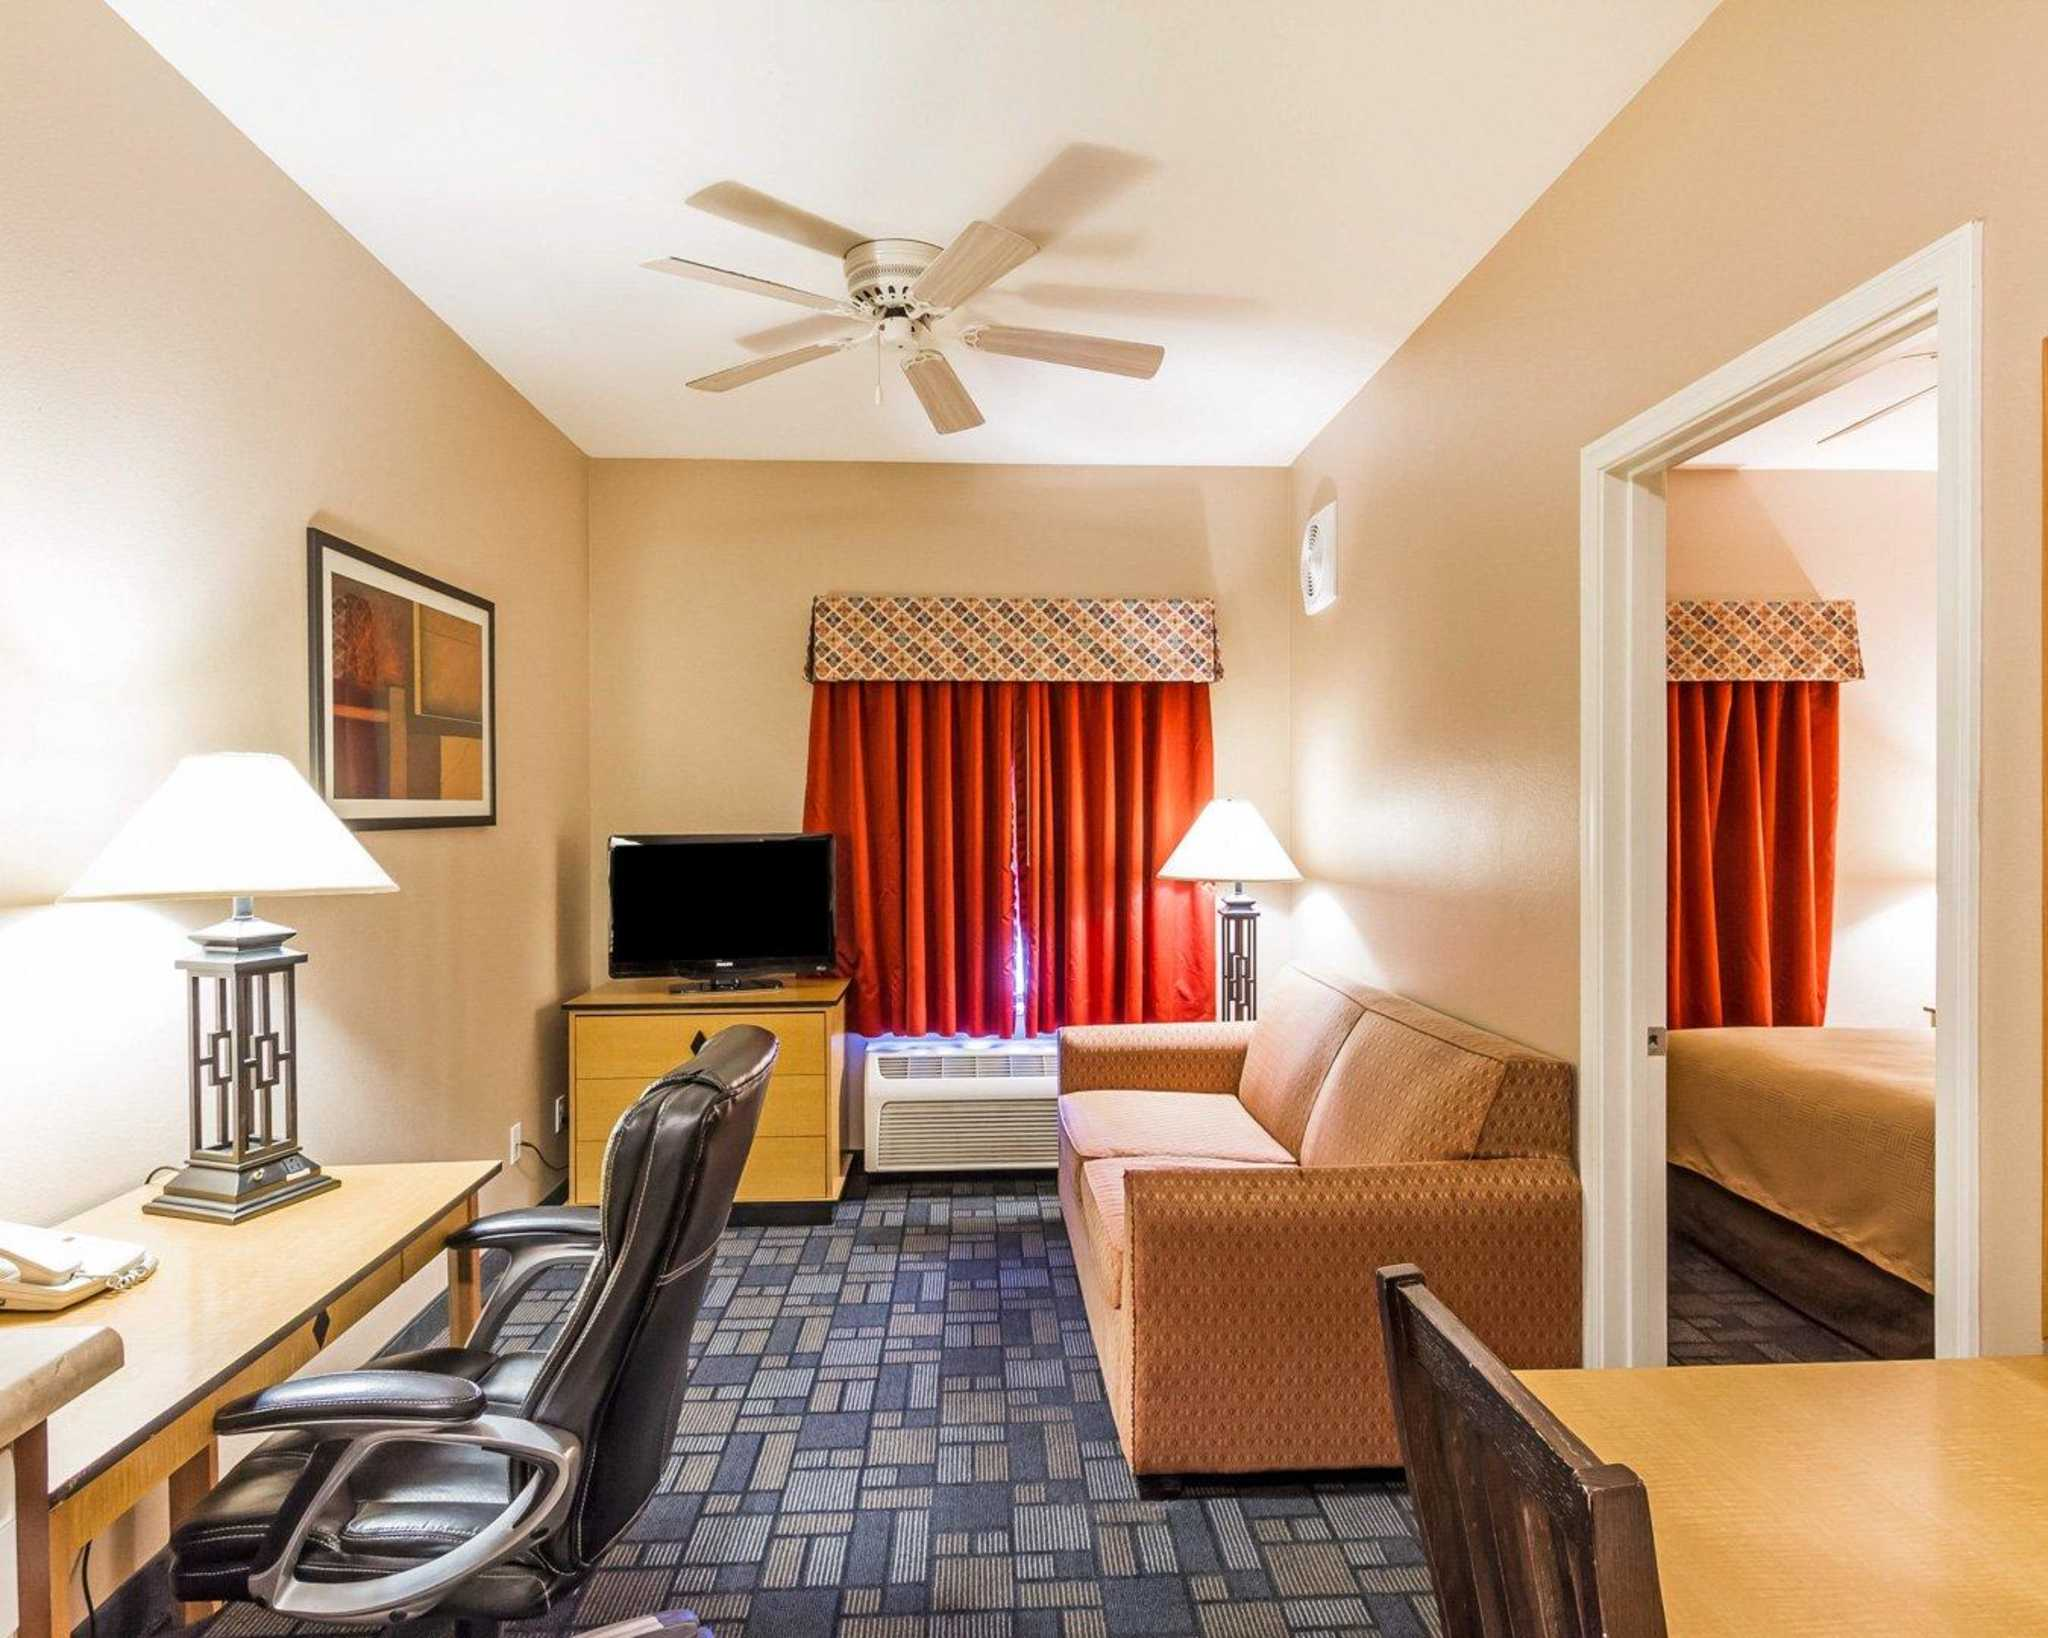 MainStay Suites image 13